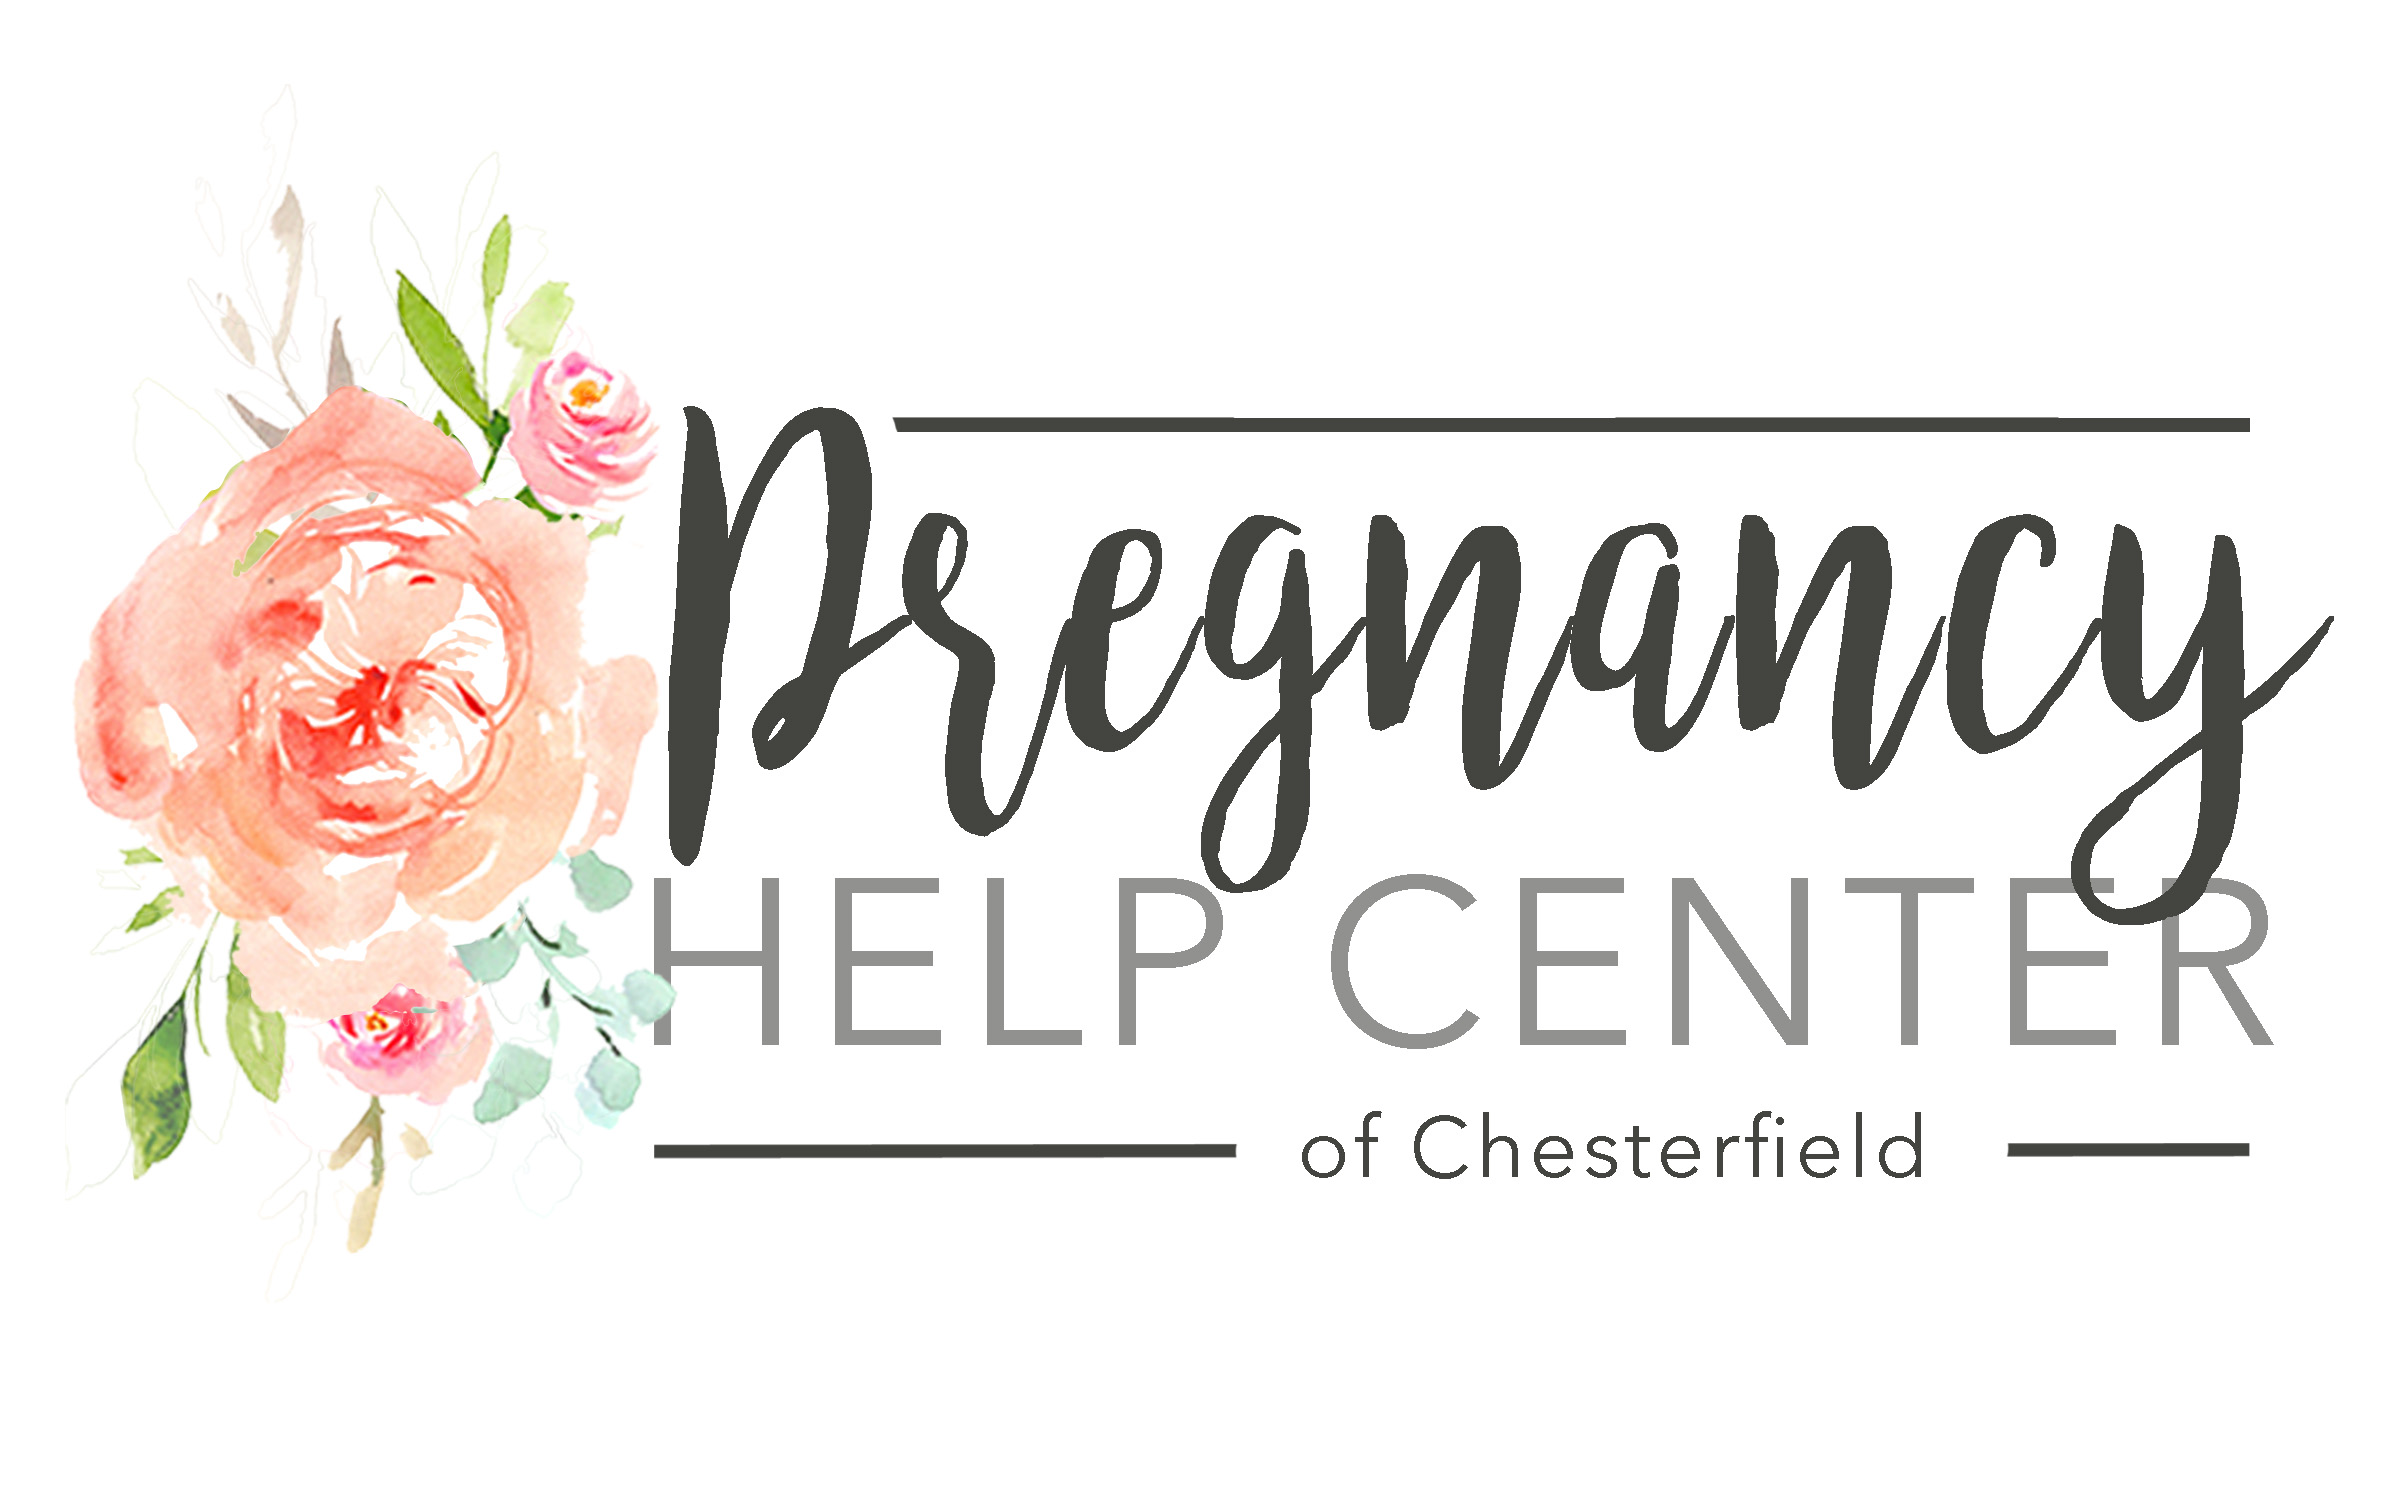 Pregnancy Help Center of Chesterfield